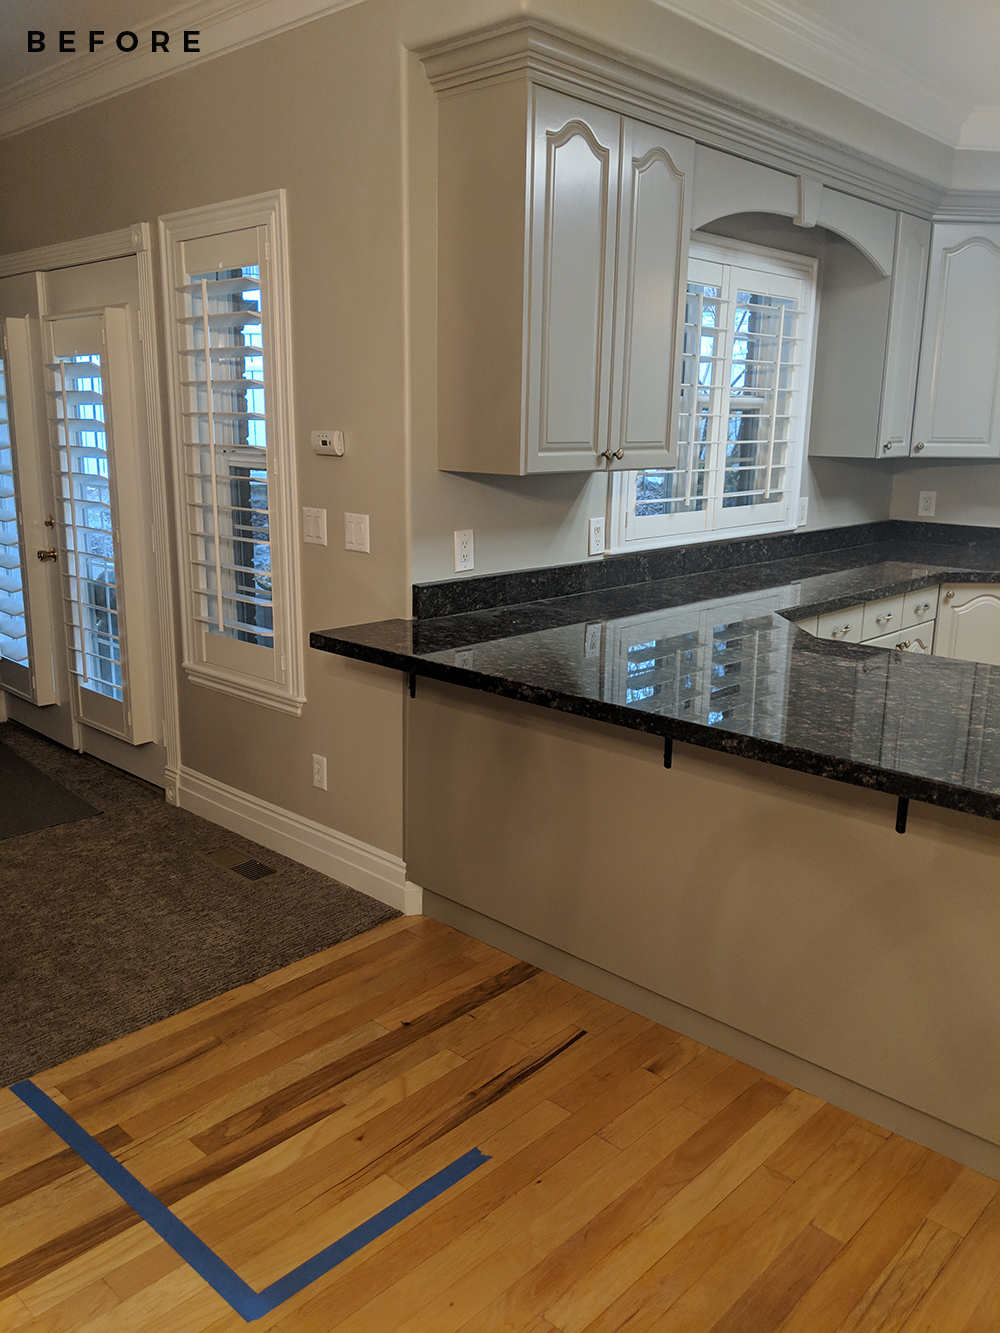 Our Next Big Project : The Kitchen - roomfortuesday.com